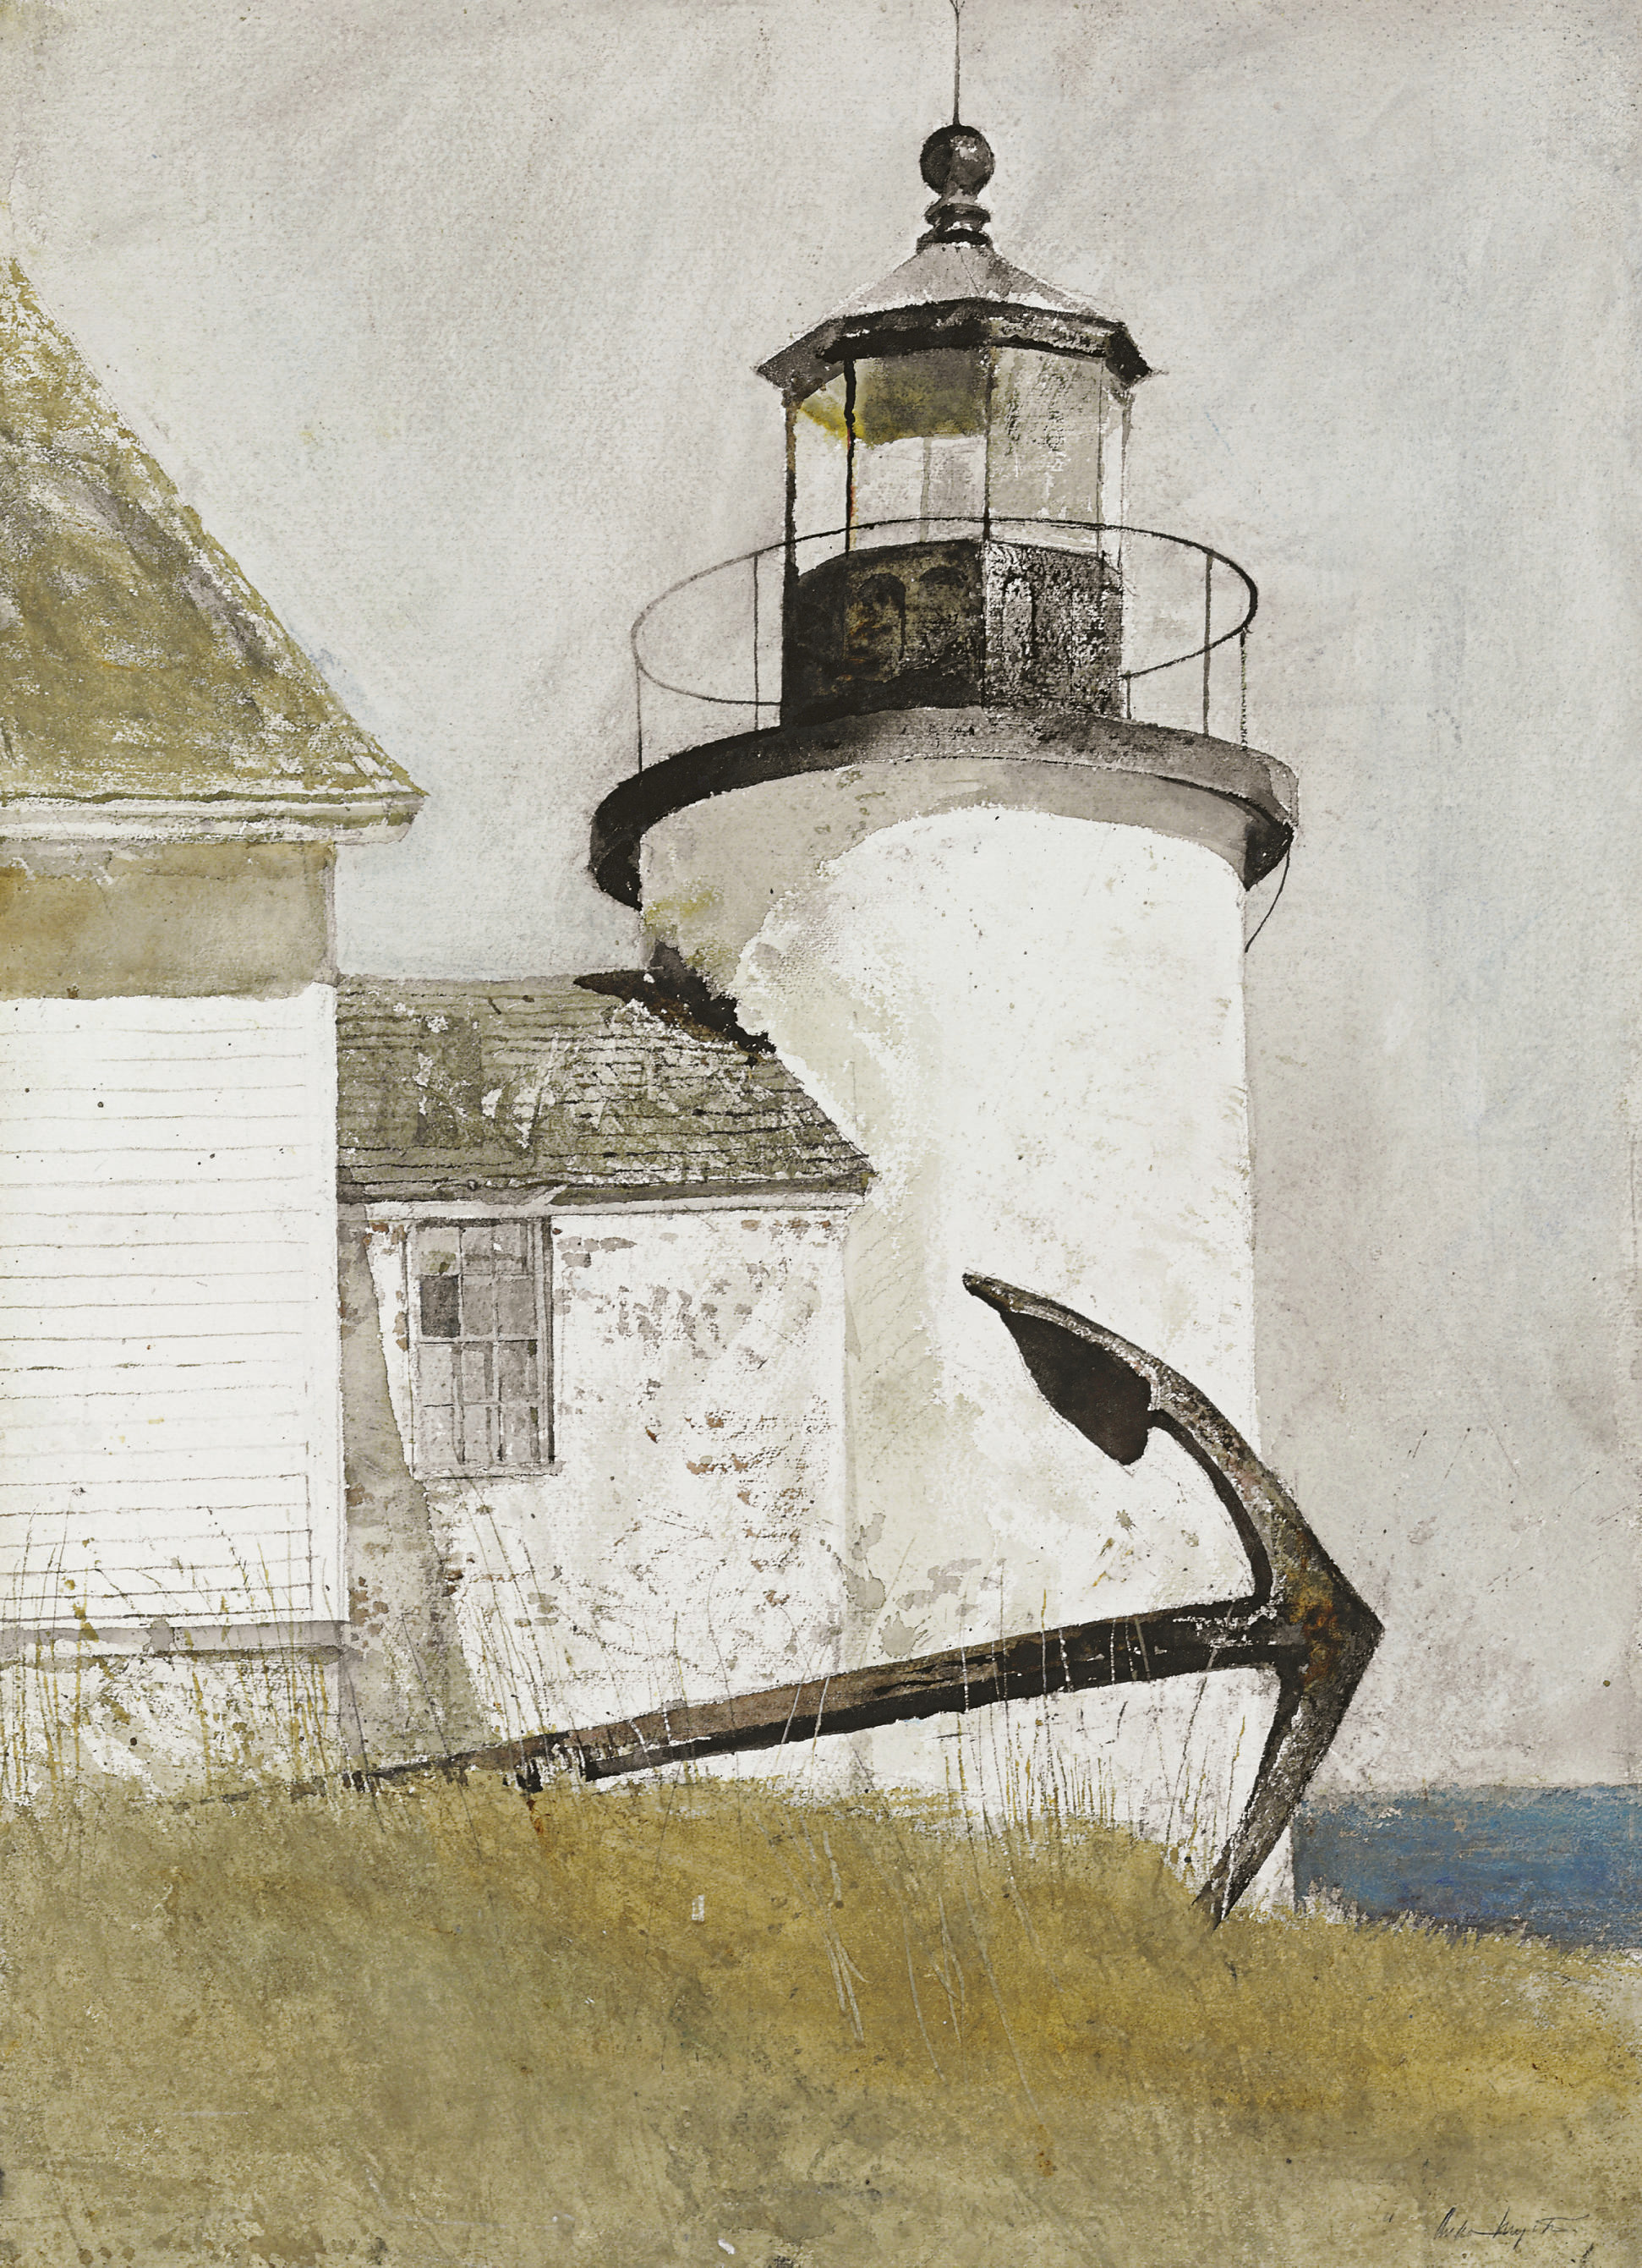 Andrew Wyeth (b. 1917)